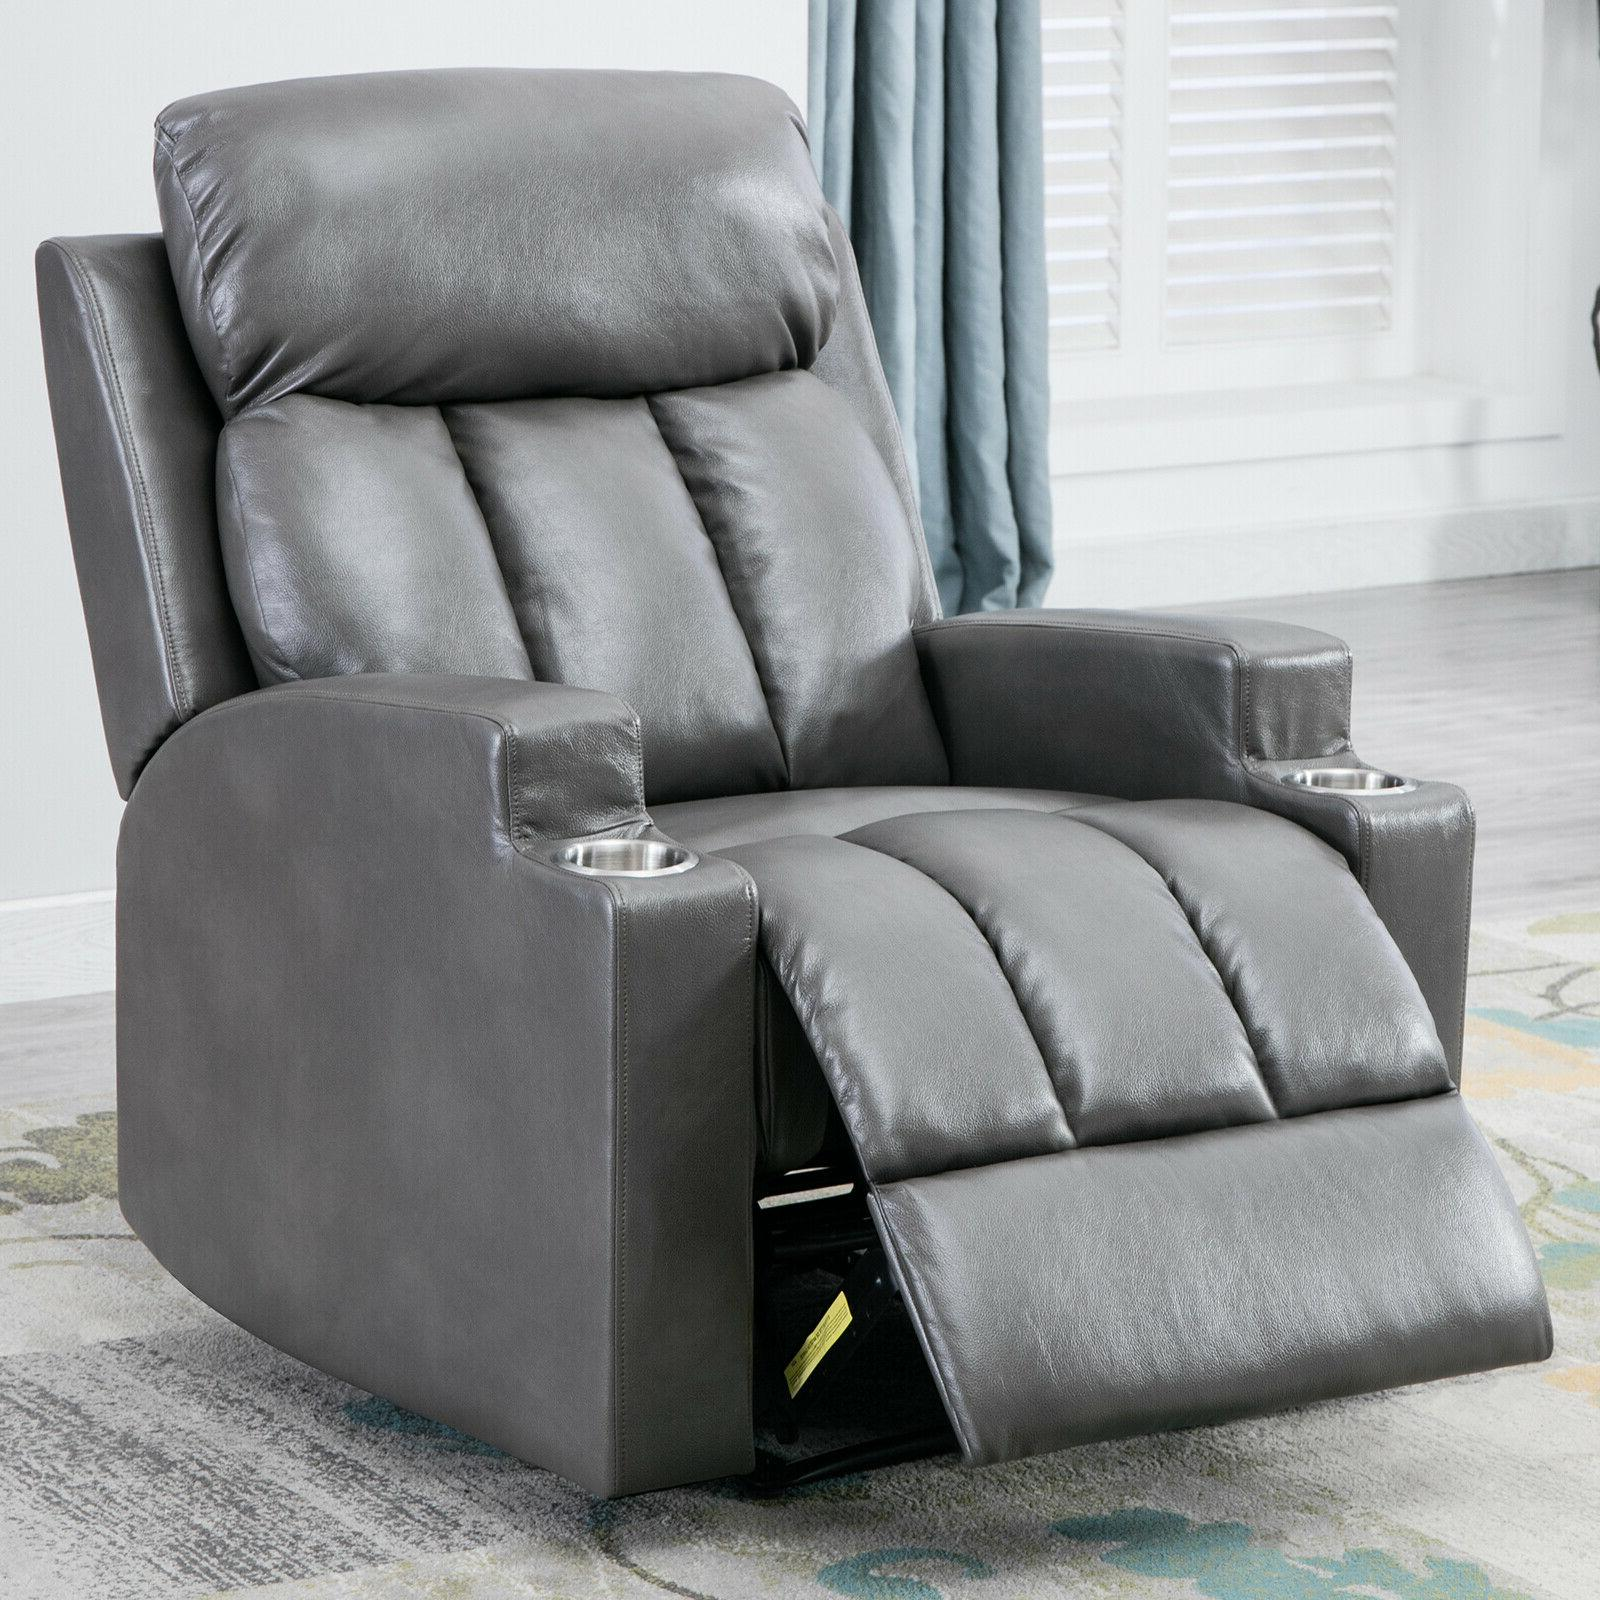 Leather Recliner Backrest Cup Holders Seating